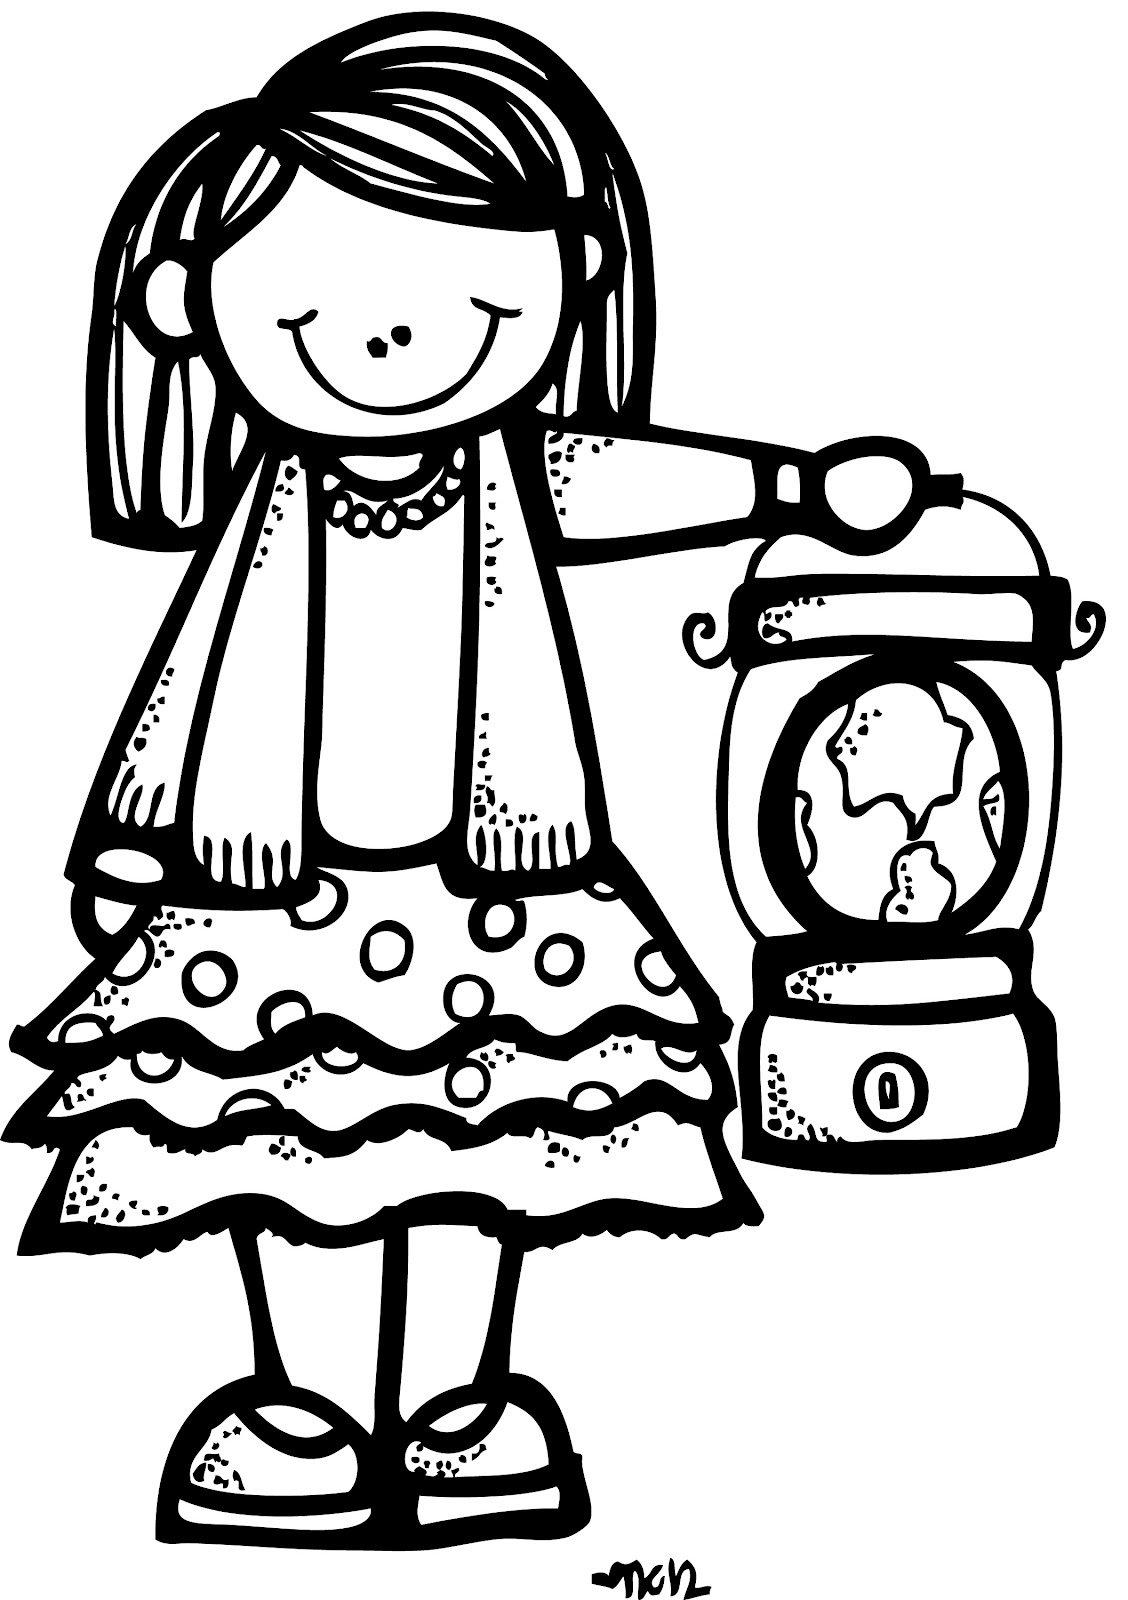 Missionary clipart black and white, Missionary black and.